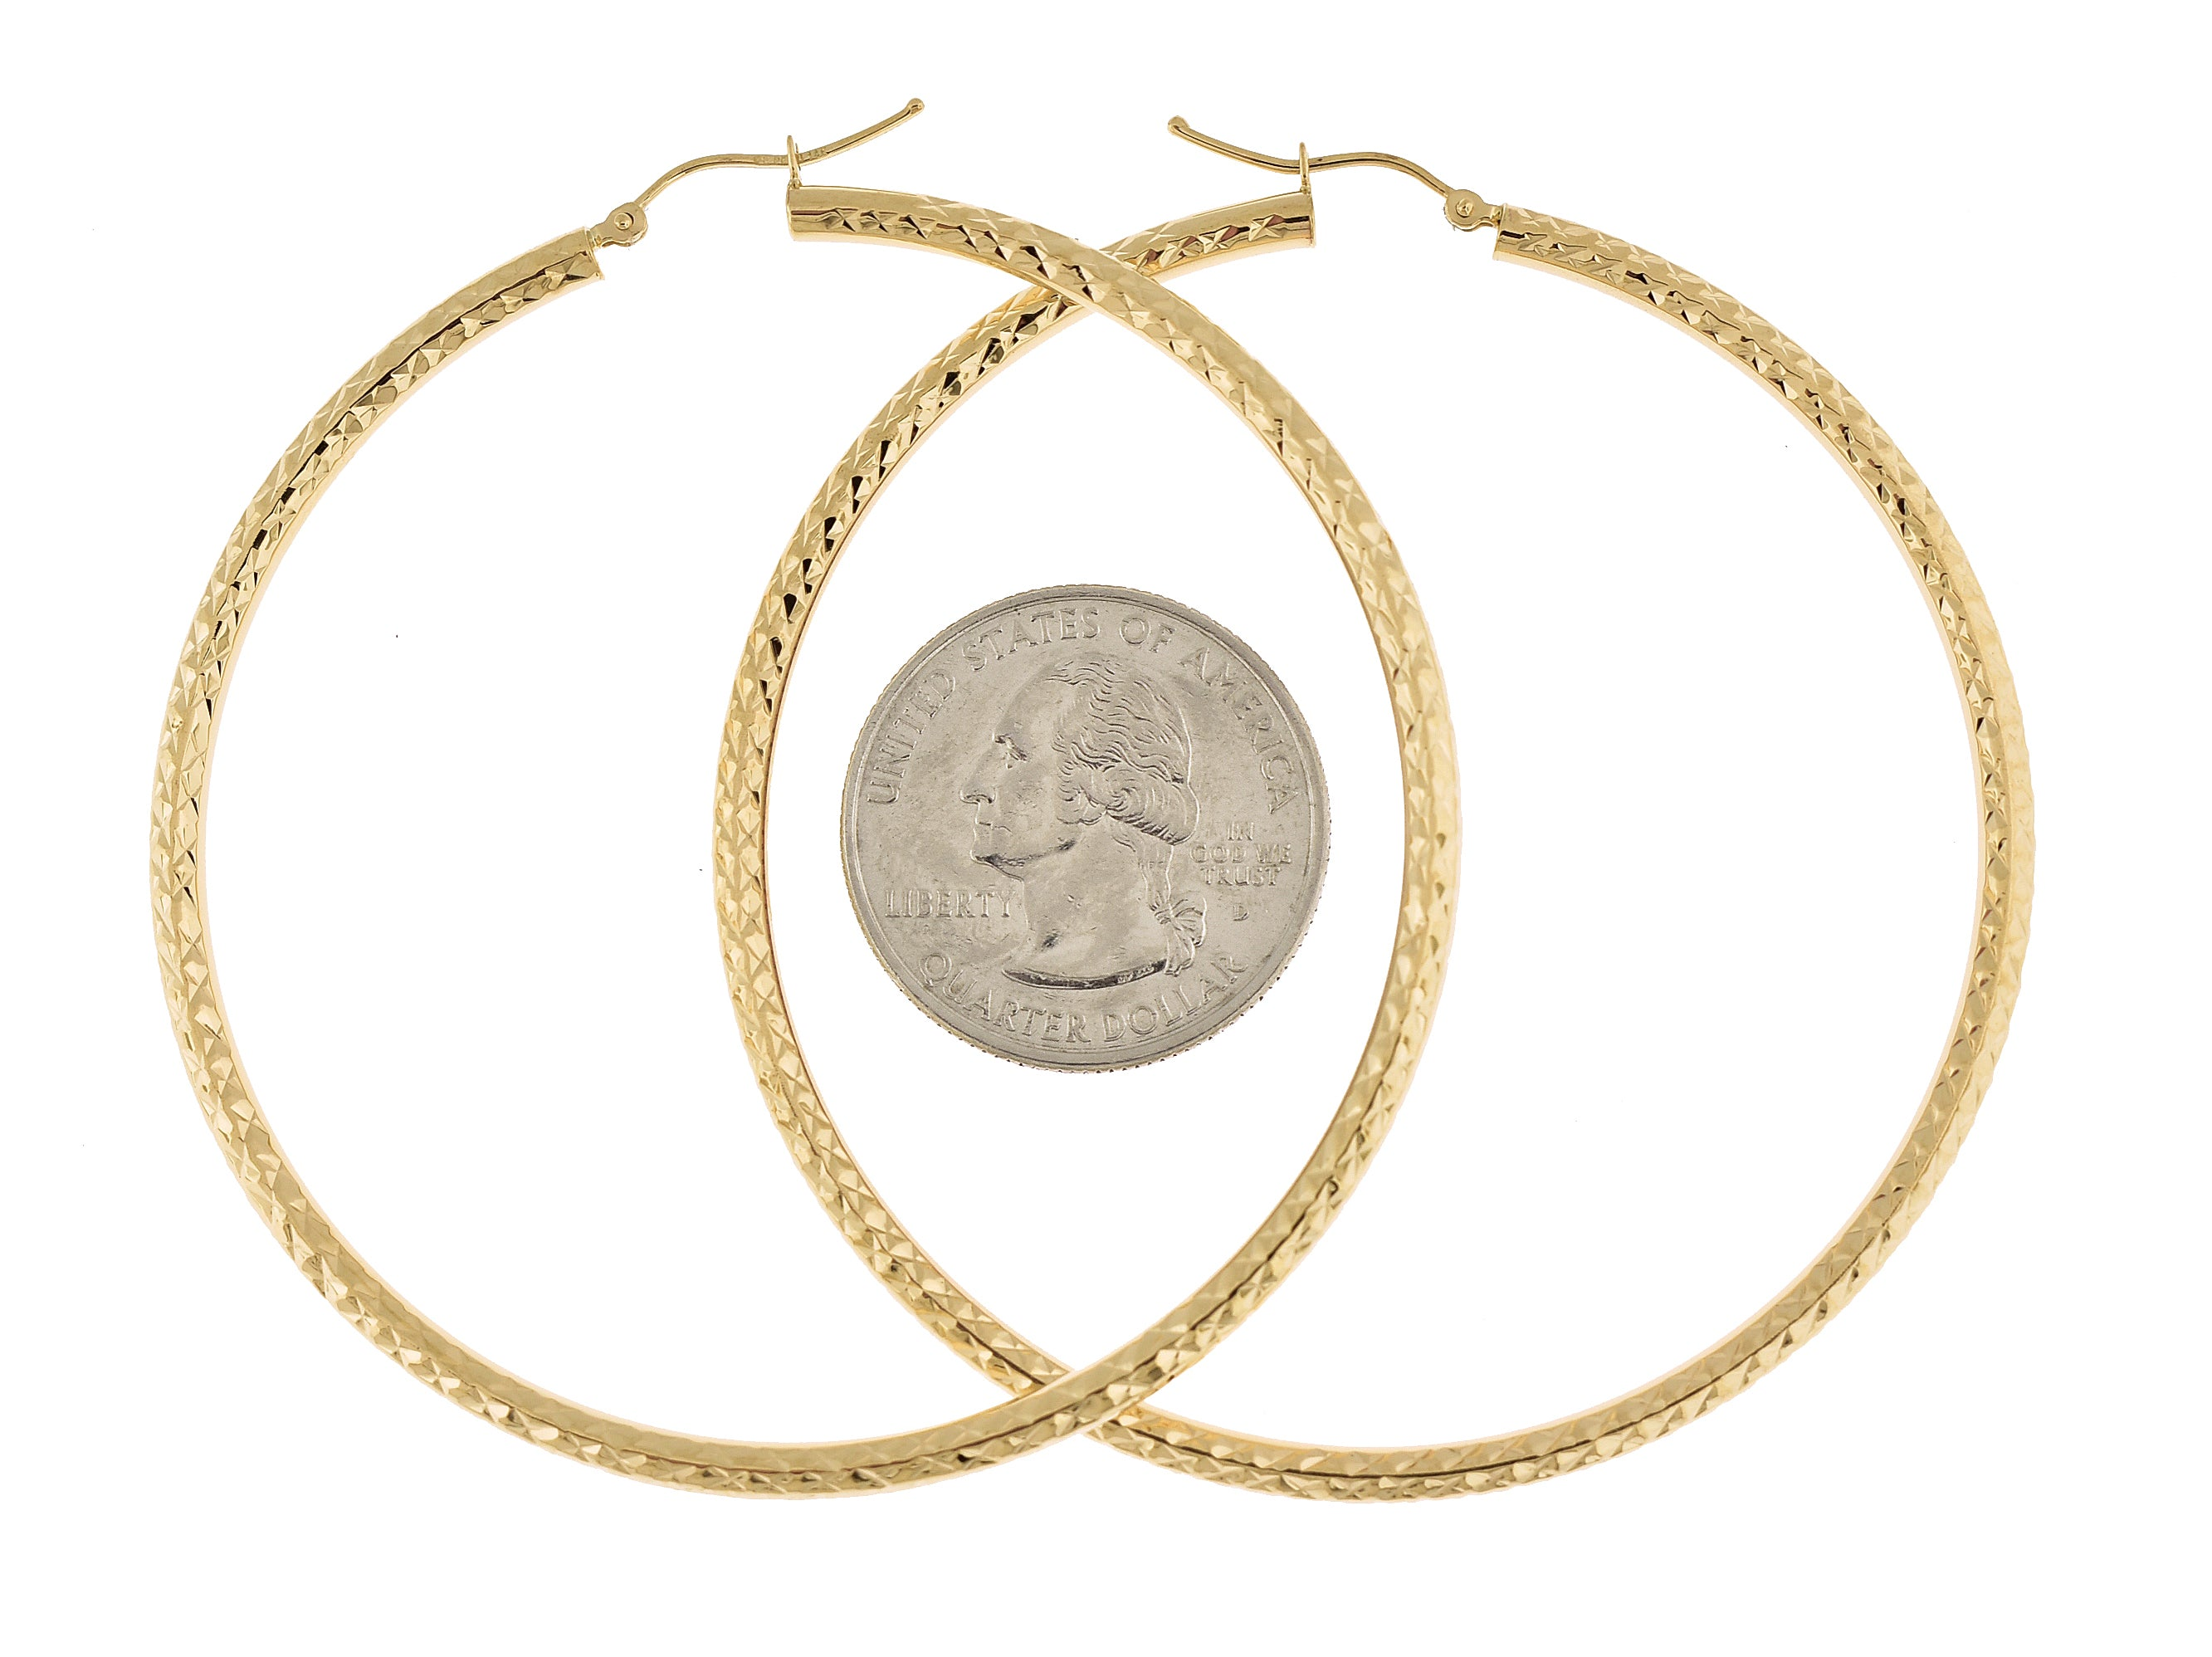 14K Yellow Gold 2.56 inch Diameter Large Diamond Cut Round Classic Hoop Earrings 65mm x 3mm